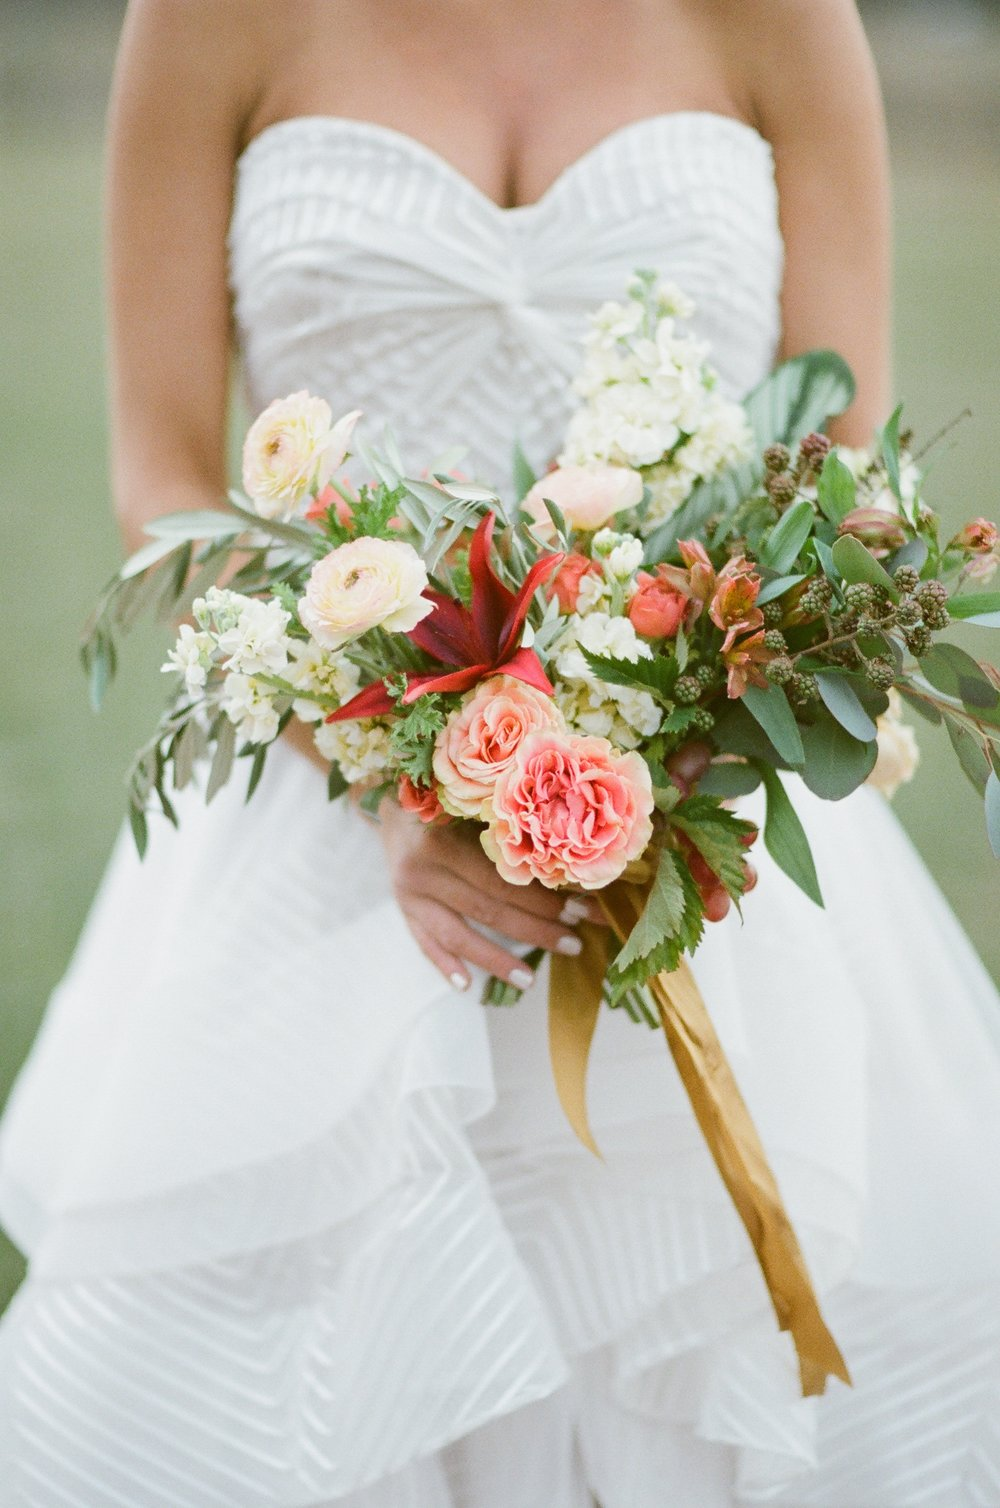 choose natural hand tied wedding bouquets for the wedding 1 - Choose Natural Hand Tied Wedding Bouquets for the Wedding